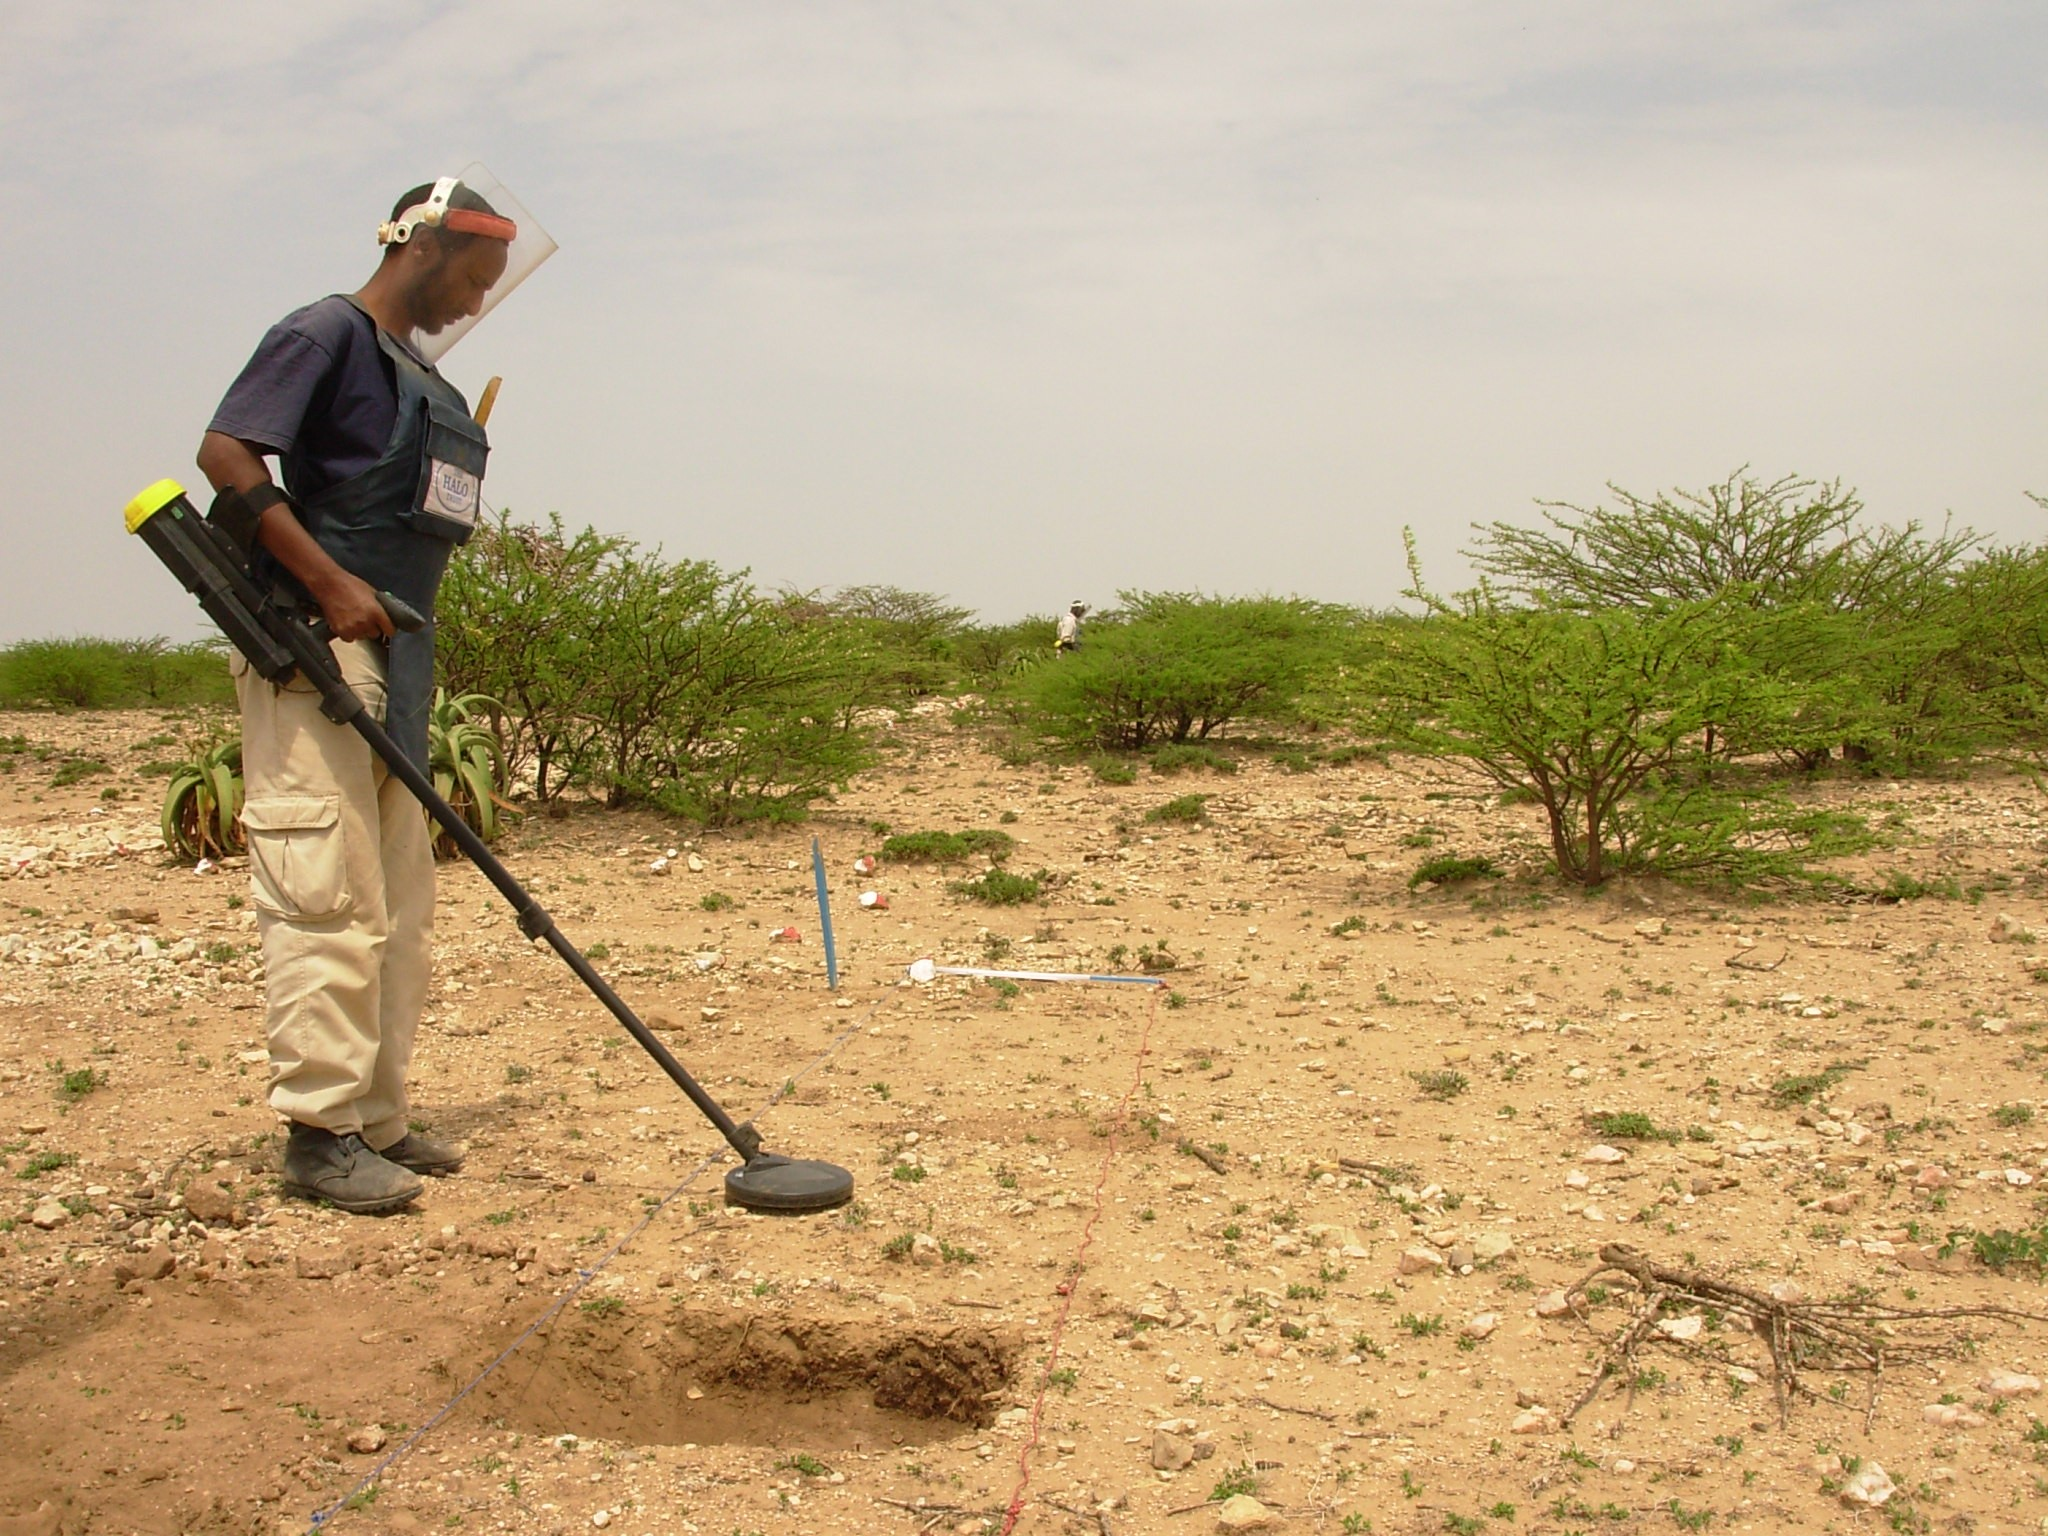 A de-mining official uses a metal detector to check for landmines in Somaliland